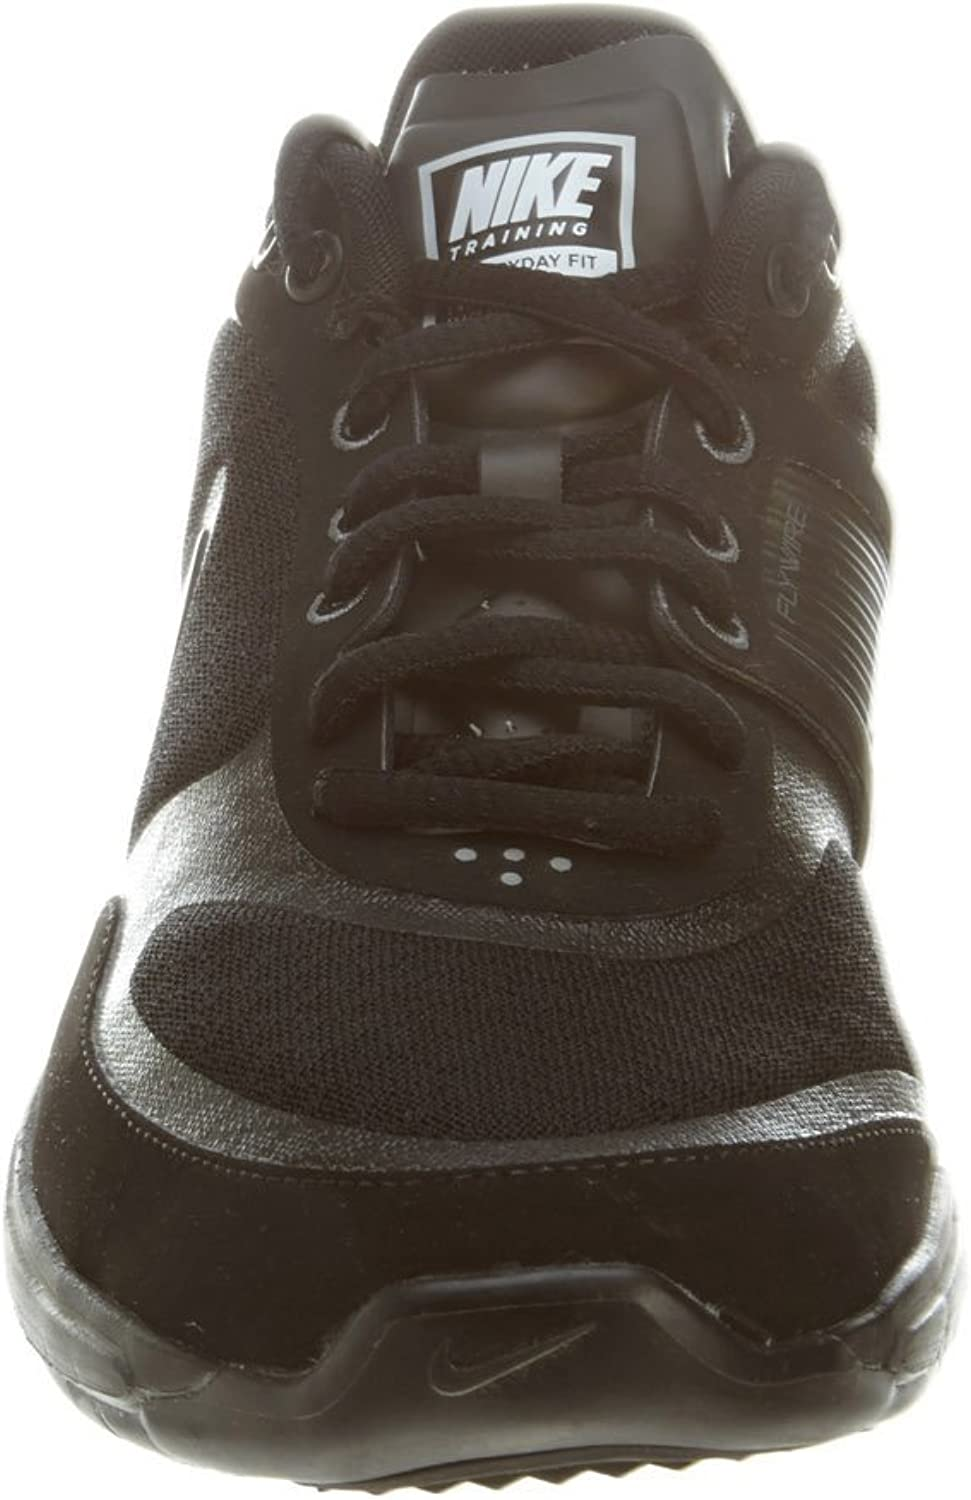 polla Tectónico caballo de fuerza  Nike Free XT Everyday Fit+ Running/Training Shoes: Amazon.co.uk: Shoes &  Bags